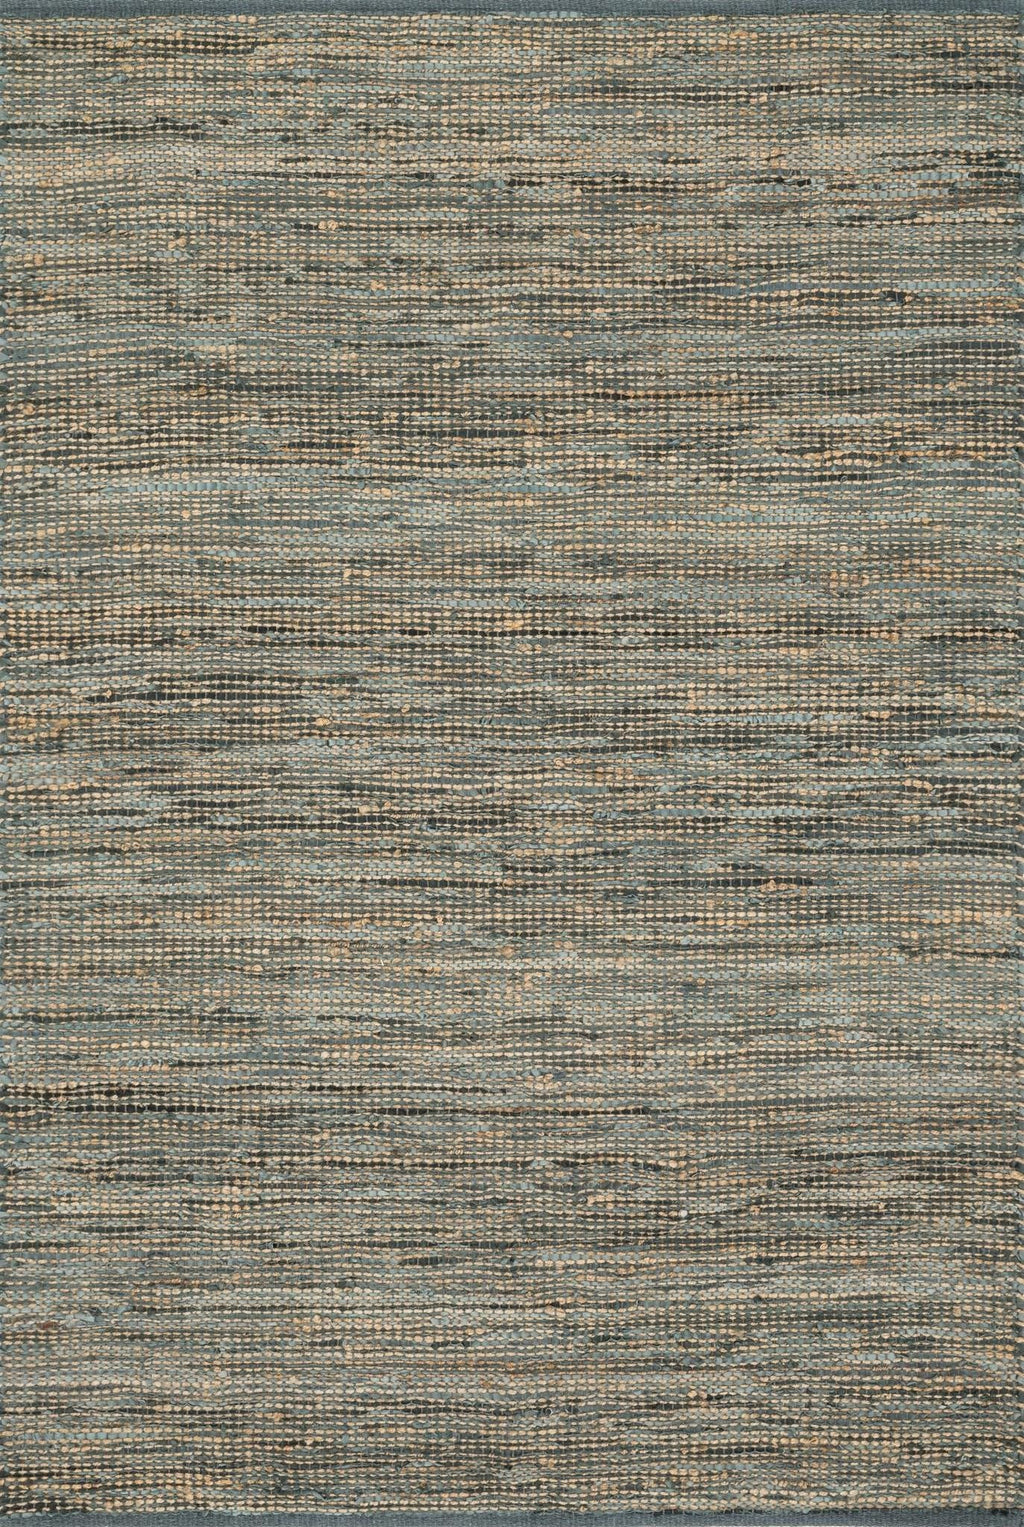 Edge Handwoven Area Rug in Grey - Upper Earth